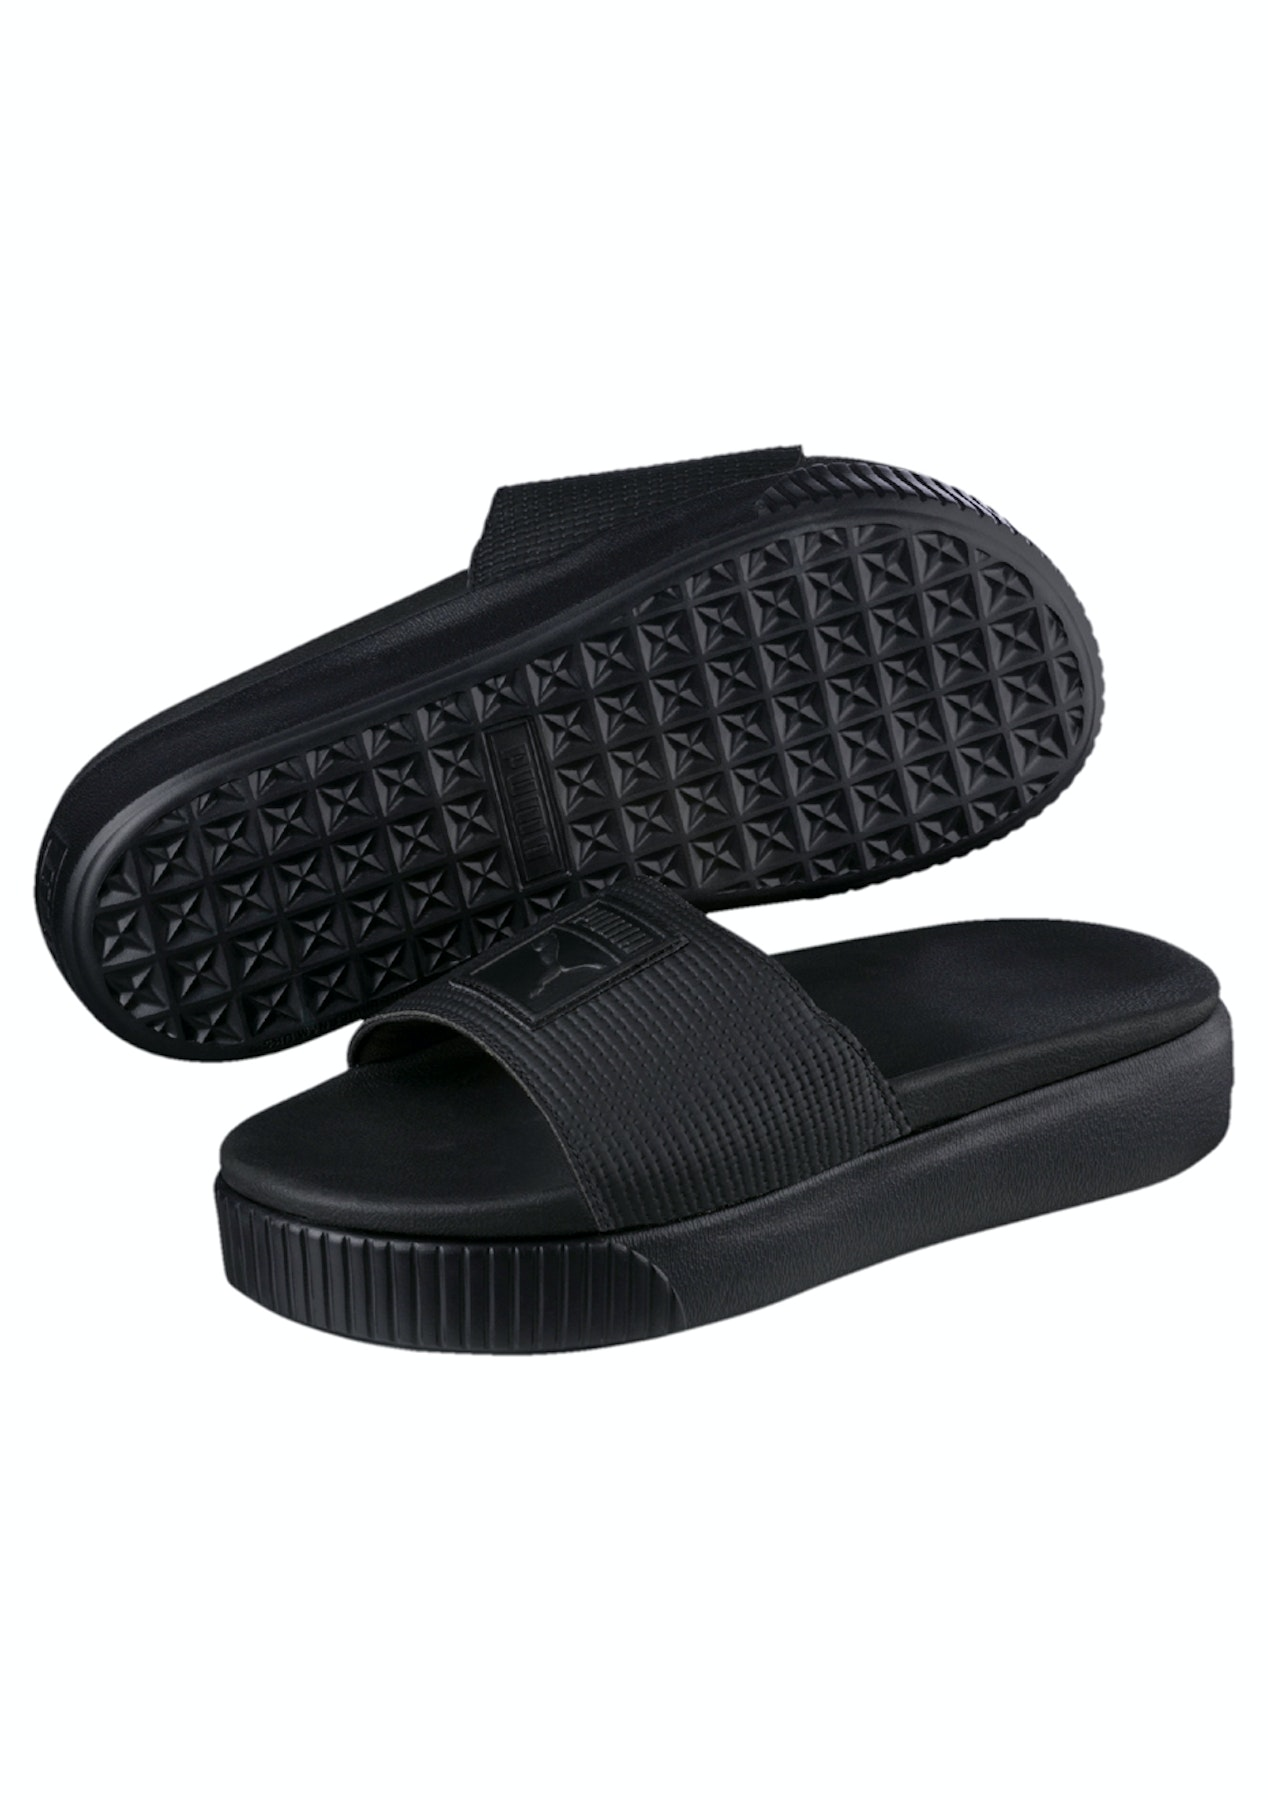 cdfb1b041a6 Puma Womens - Platform Slide Ep - Black - Summer Slides and Sandals - Onceit